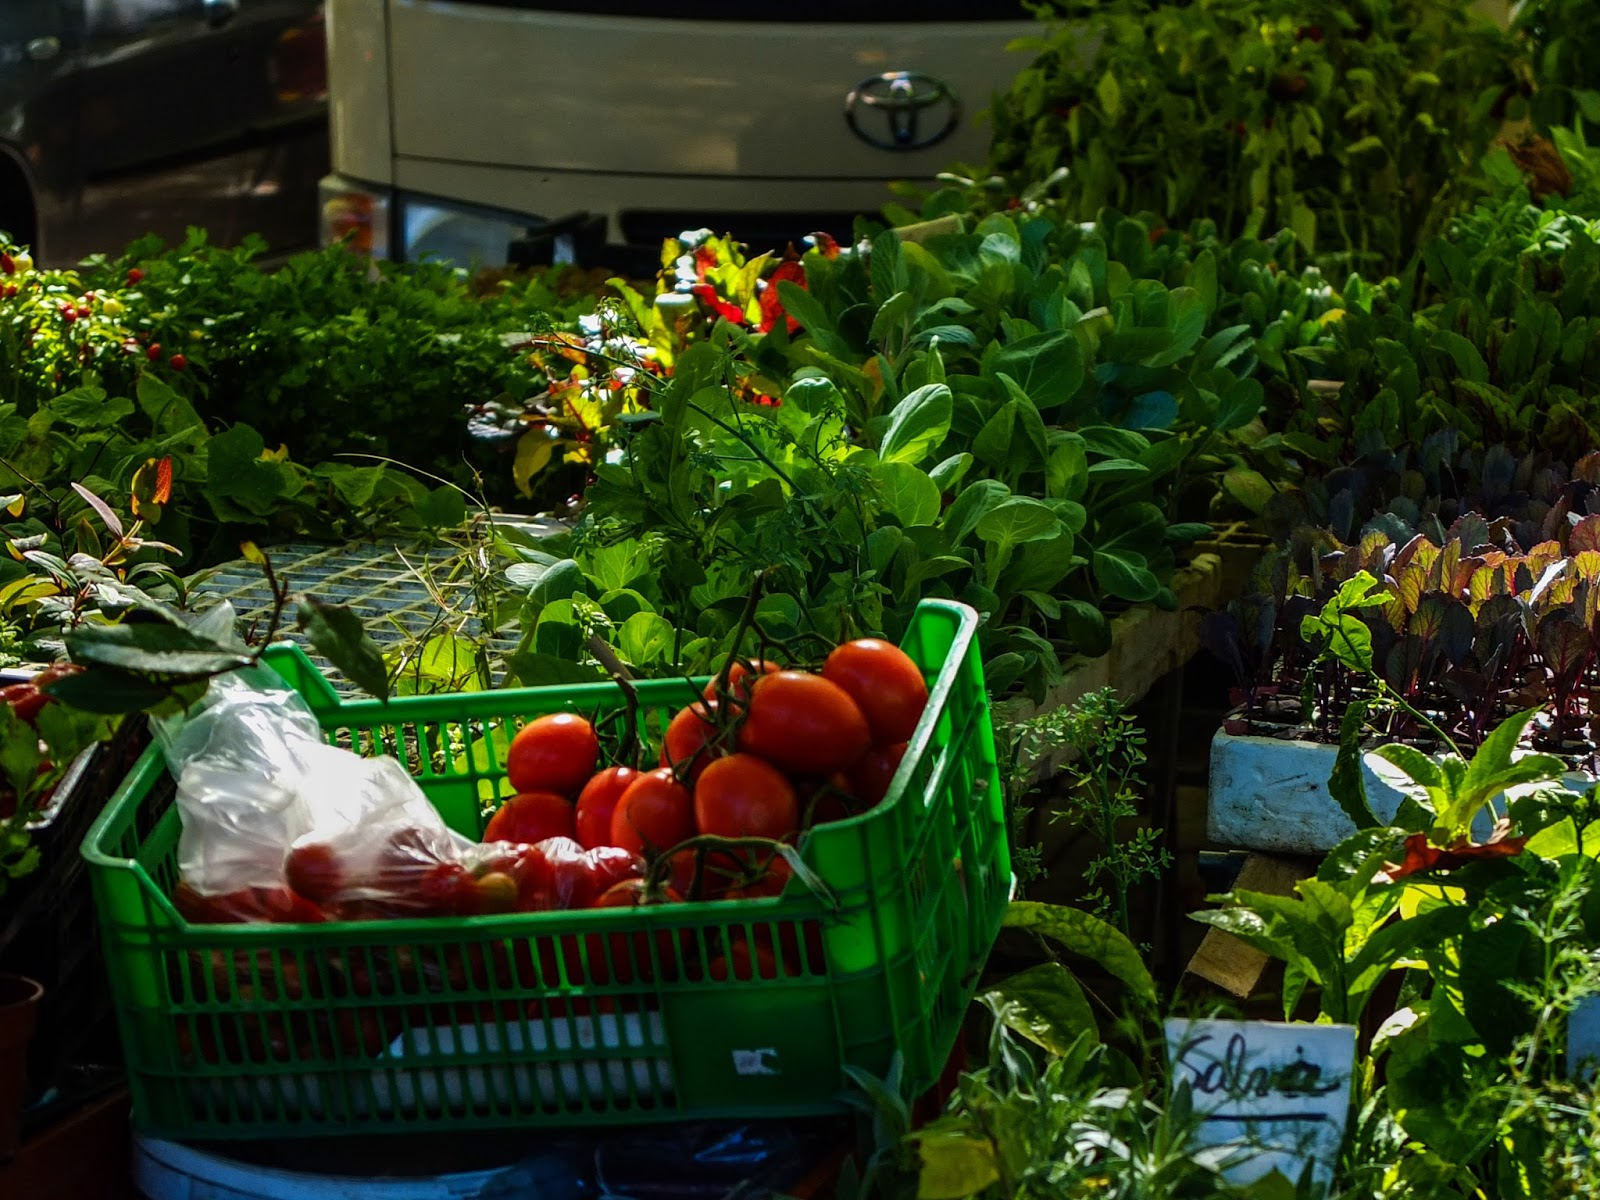 Crate of tomatoes and herbs with a Toyota Hiace at a food maket in Porto, Portugal.